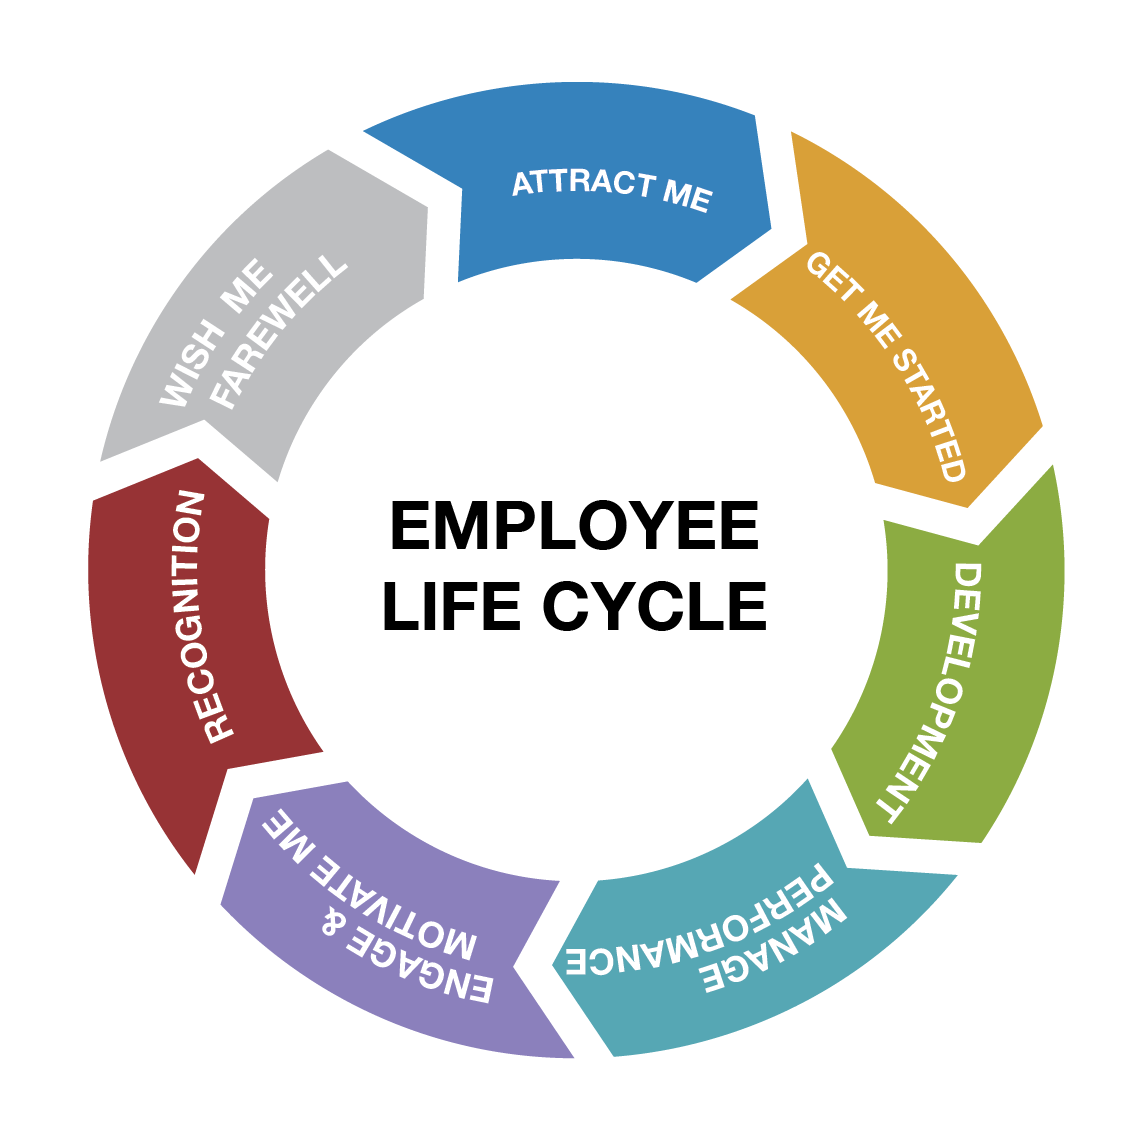 small resolution of employee life cycle info graphic hr management talent management leadership development training business